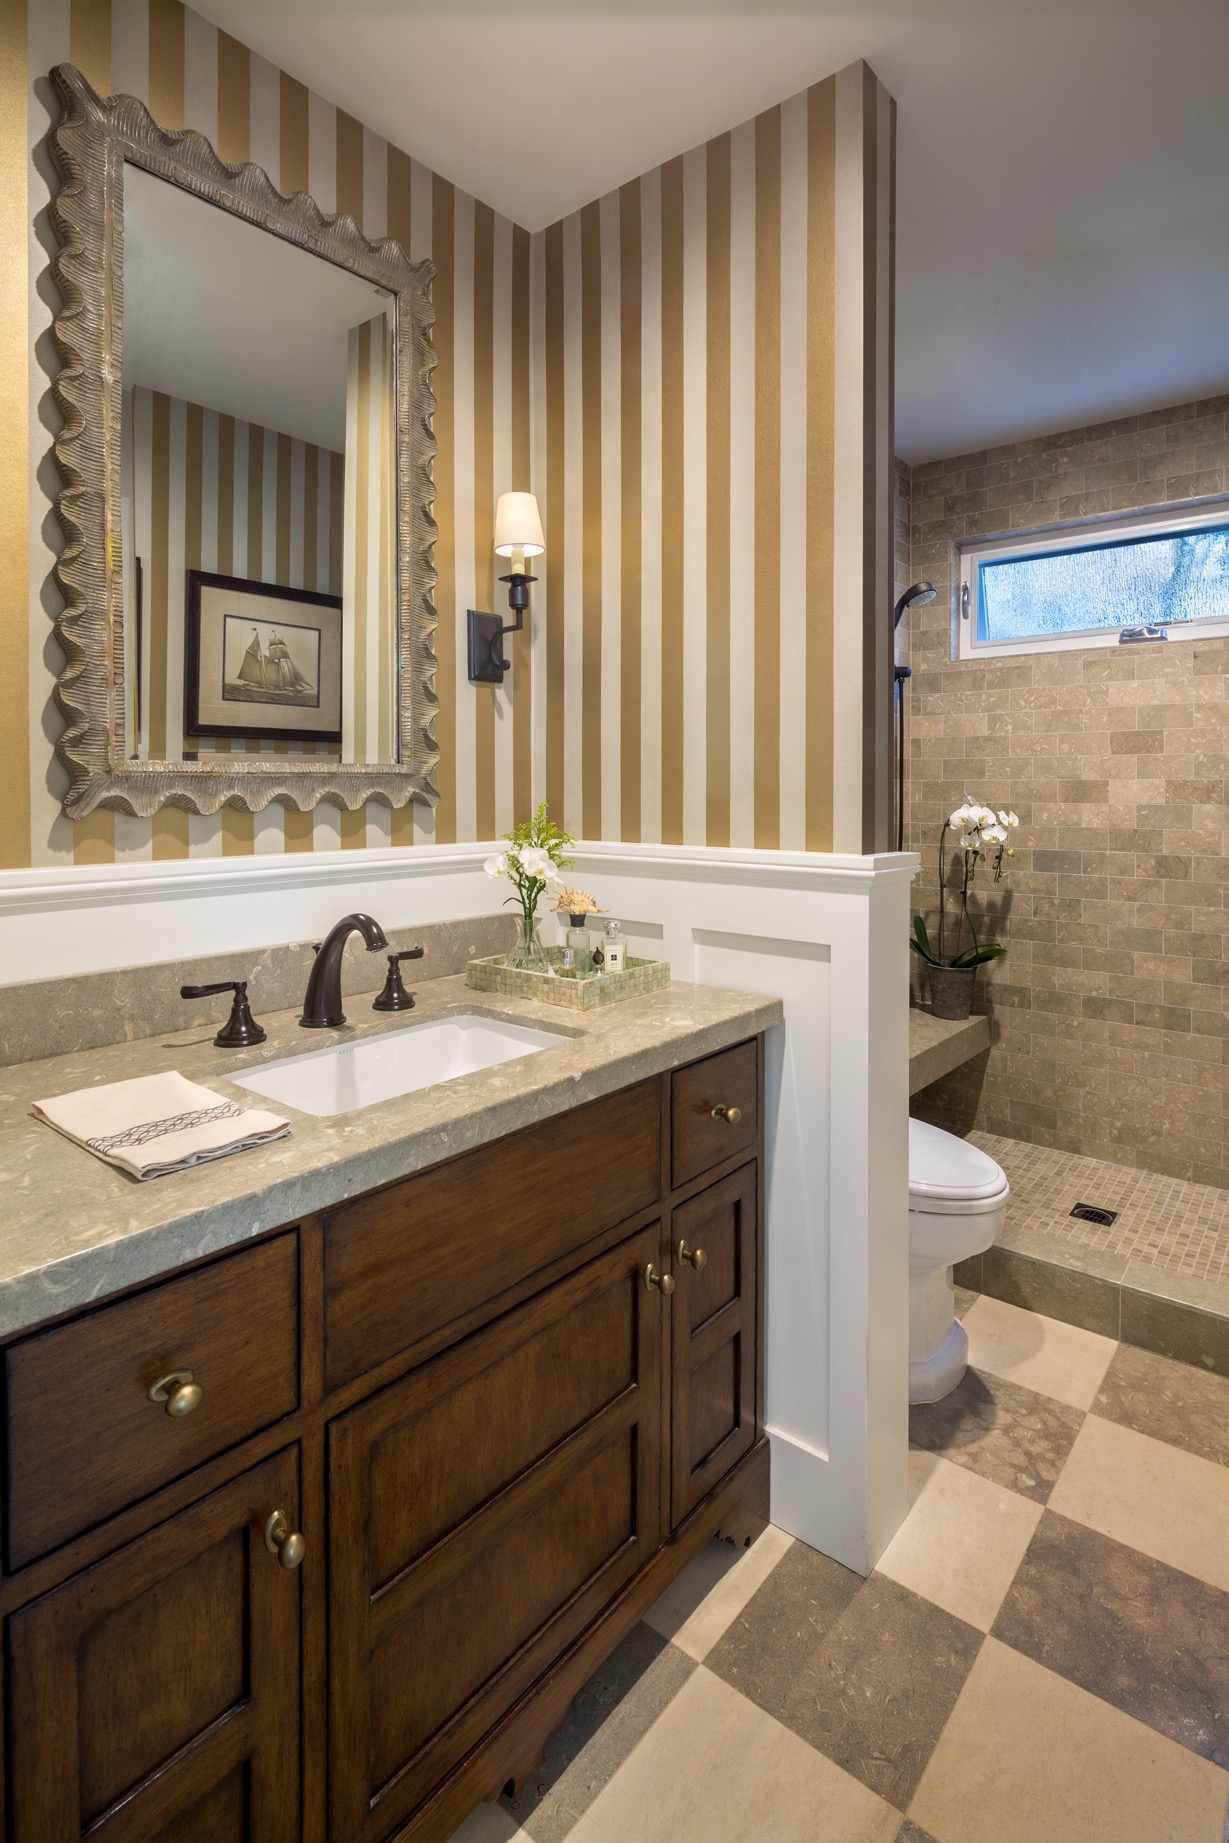 Small Bathroom Remodel And Wall Paint Ideas (View 7 of 14)